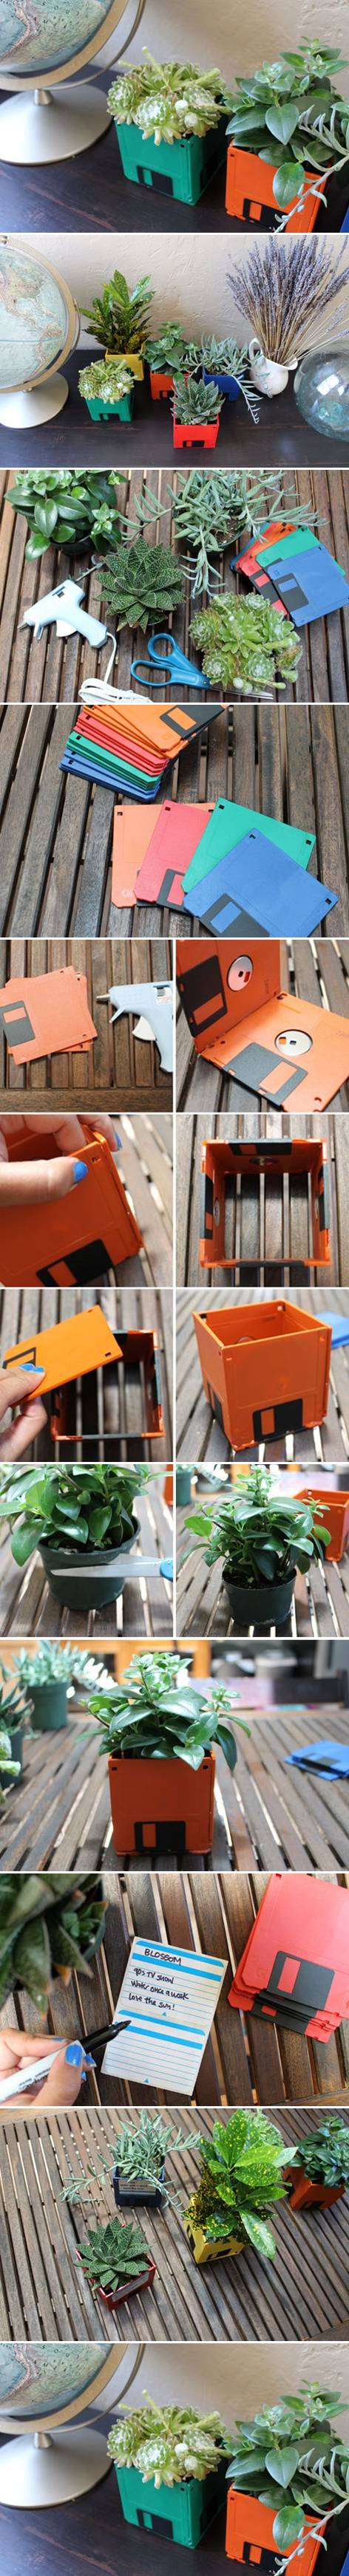 How To Make cute floppy Diskette flower pots step by step DIY tutorial instructions